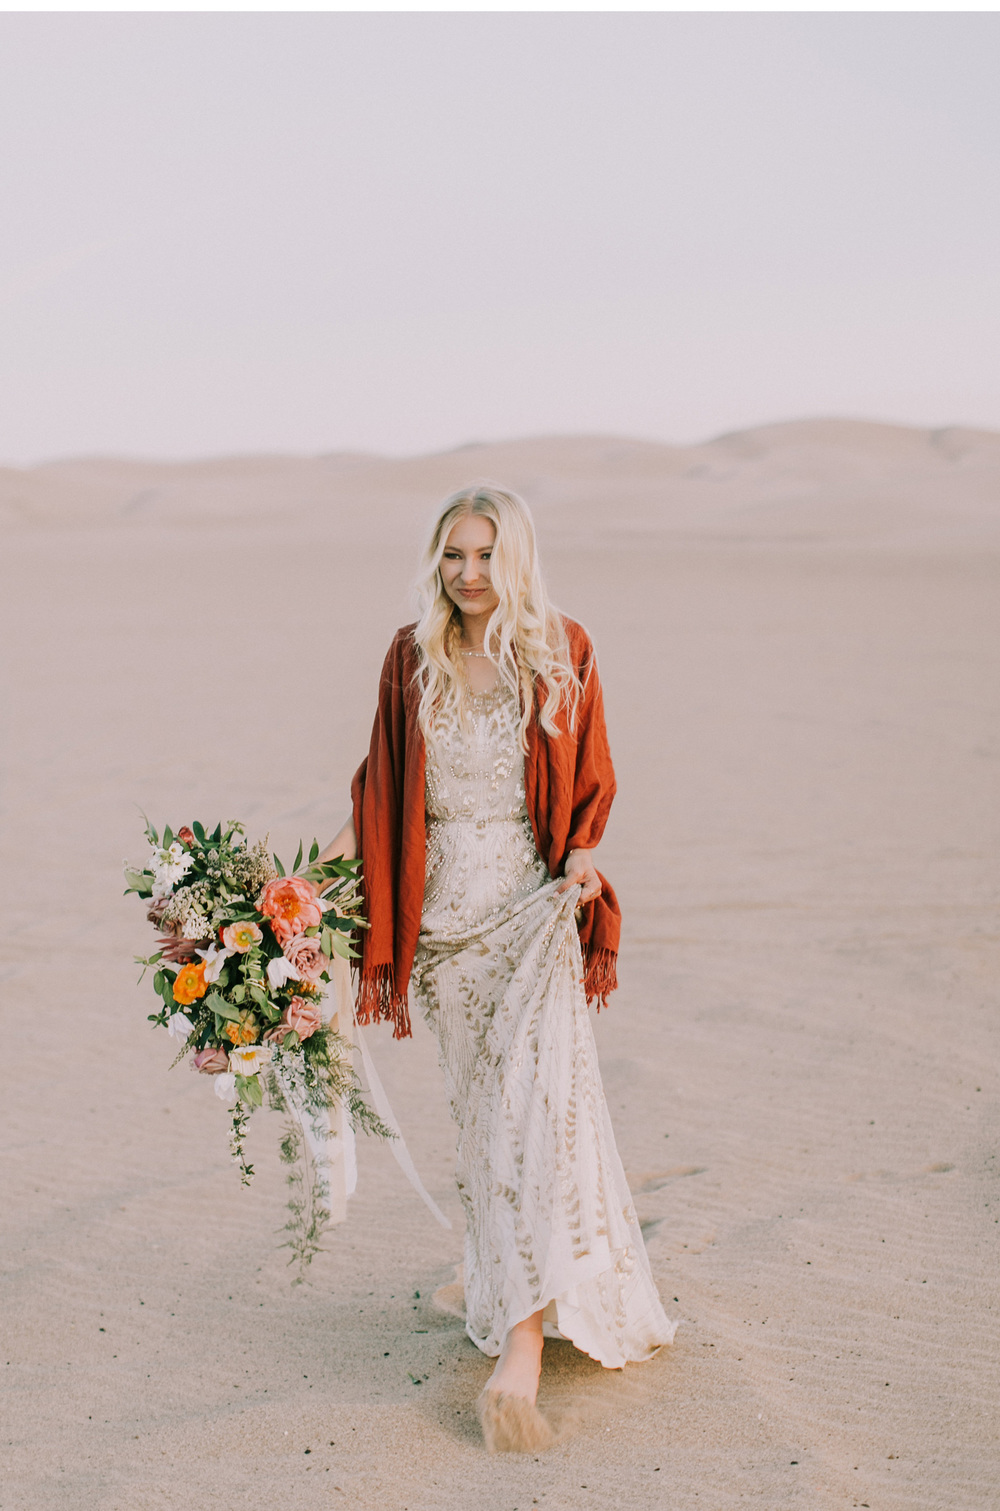 Desert-Wedding-Free-People-Wedding-Natalie-Schutt-Photography_05.jpg